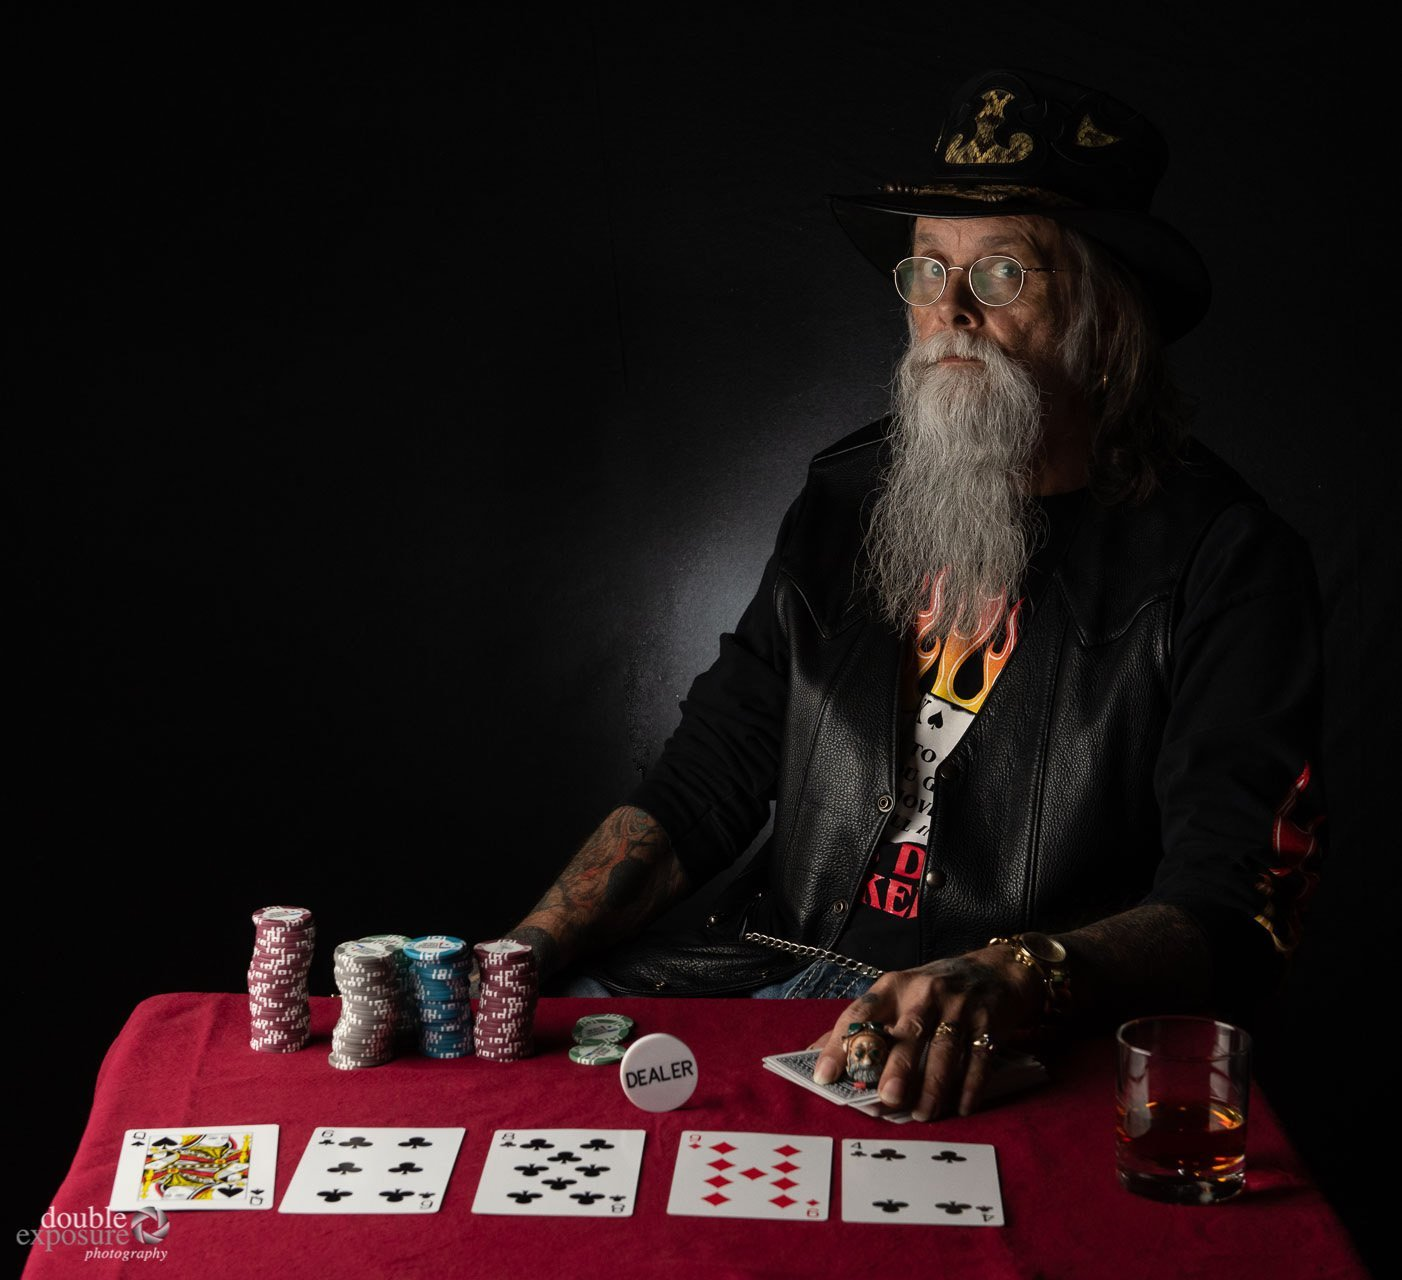 poker player sizing up opponent.